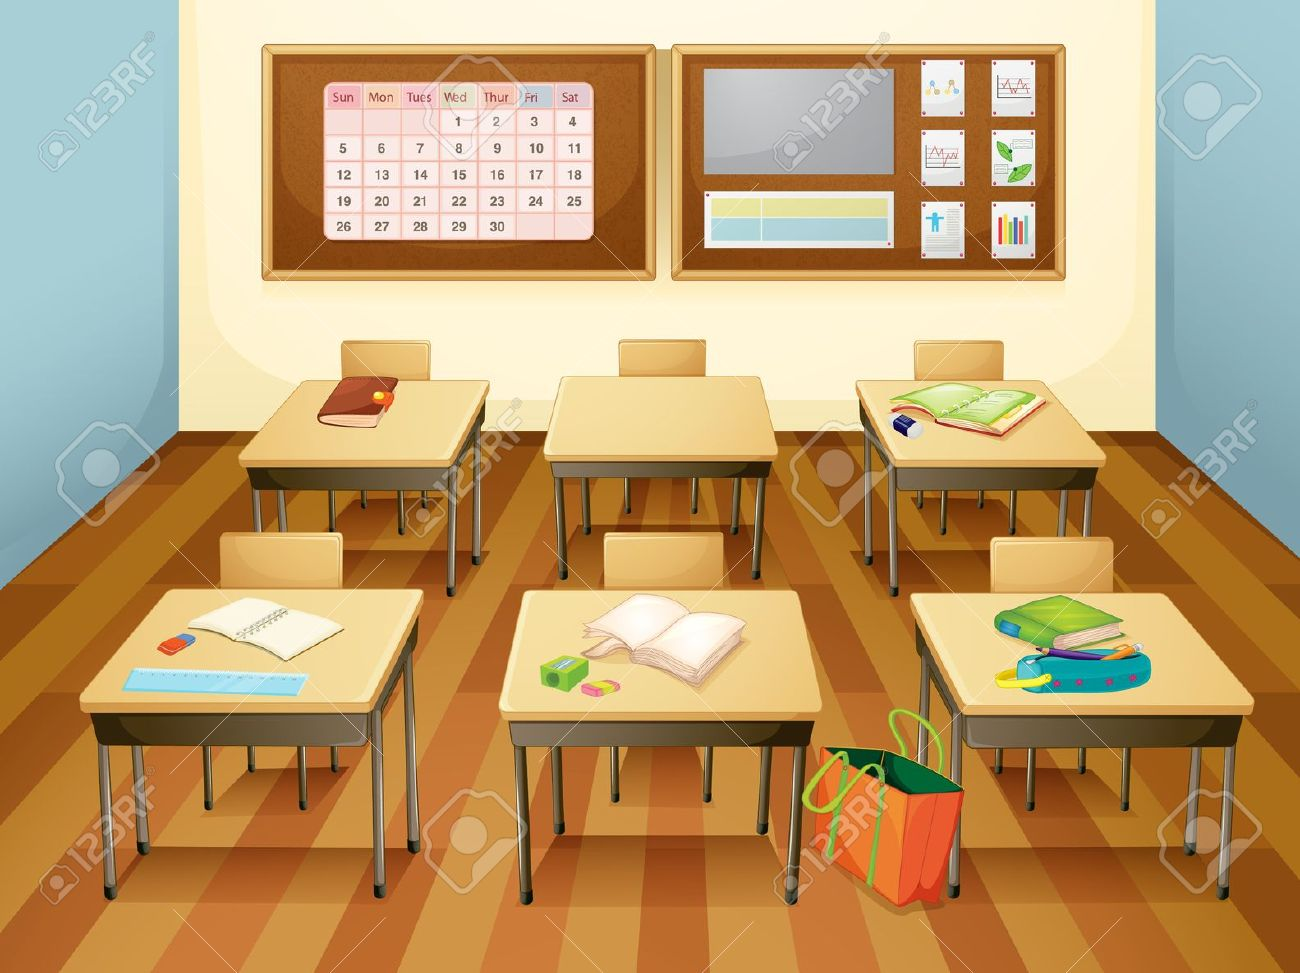 Free animated classroom clipart.